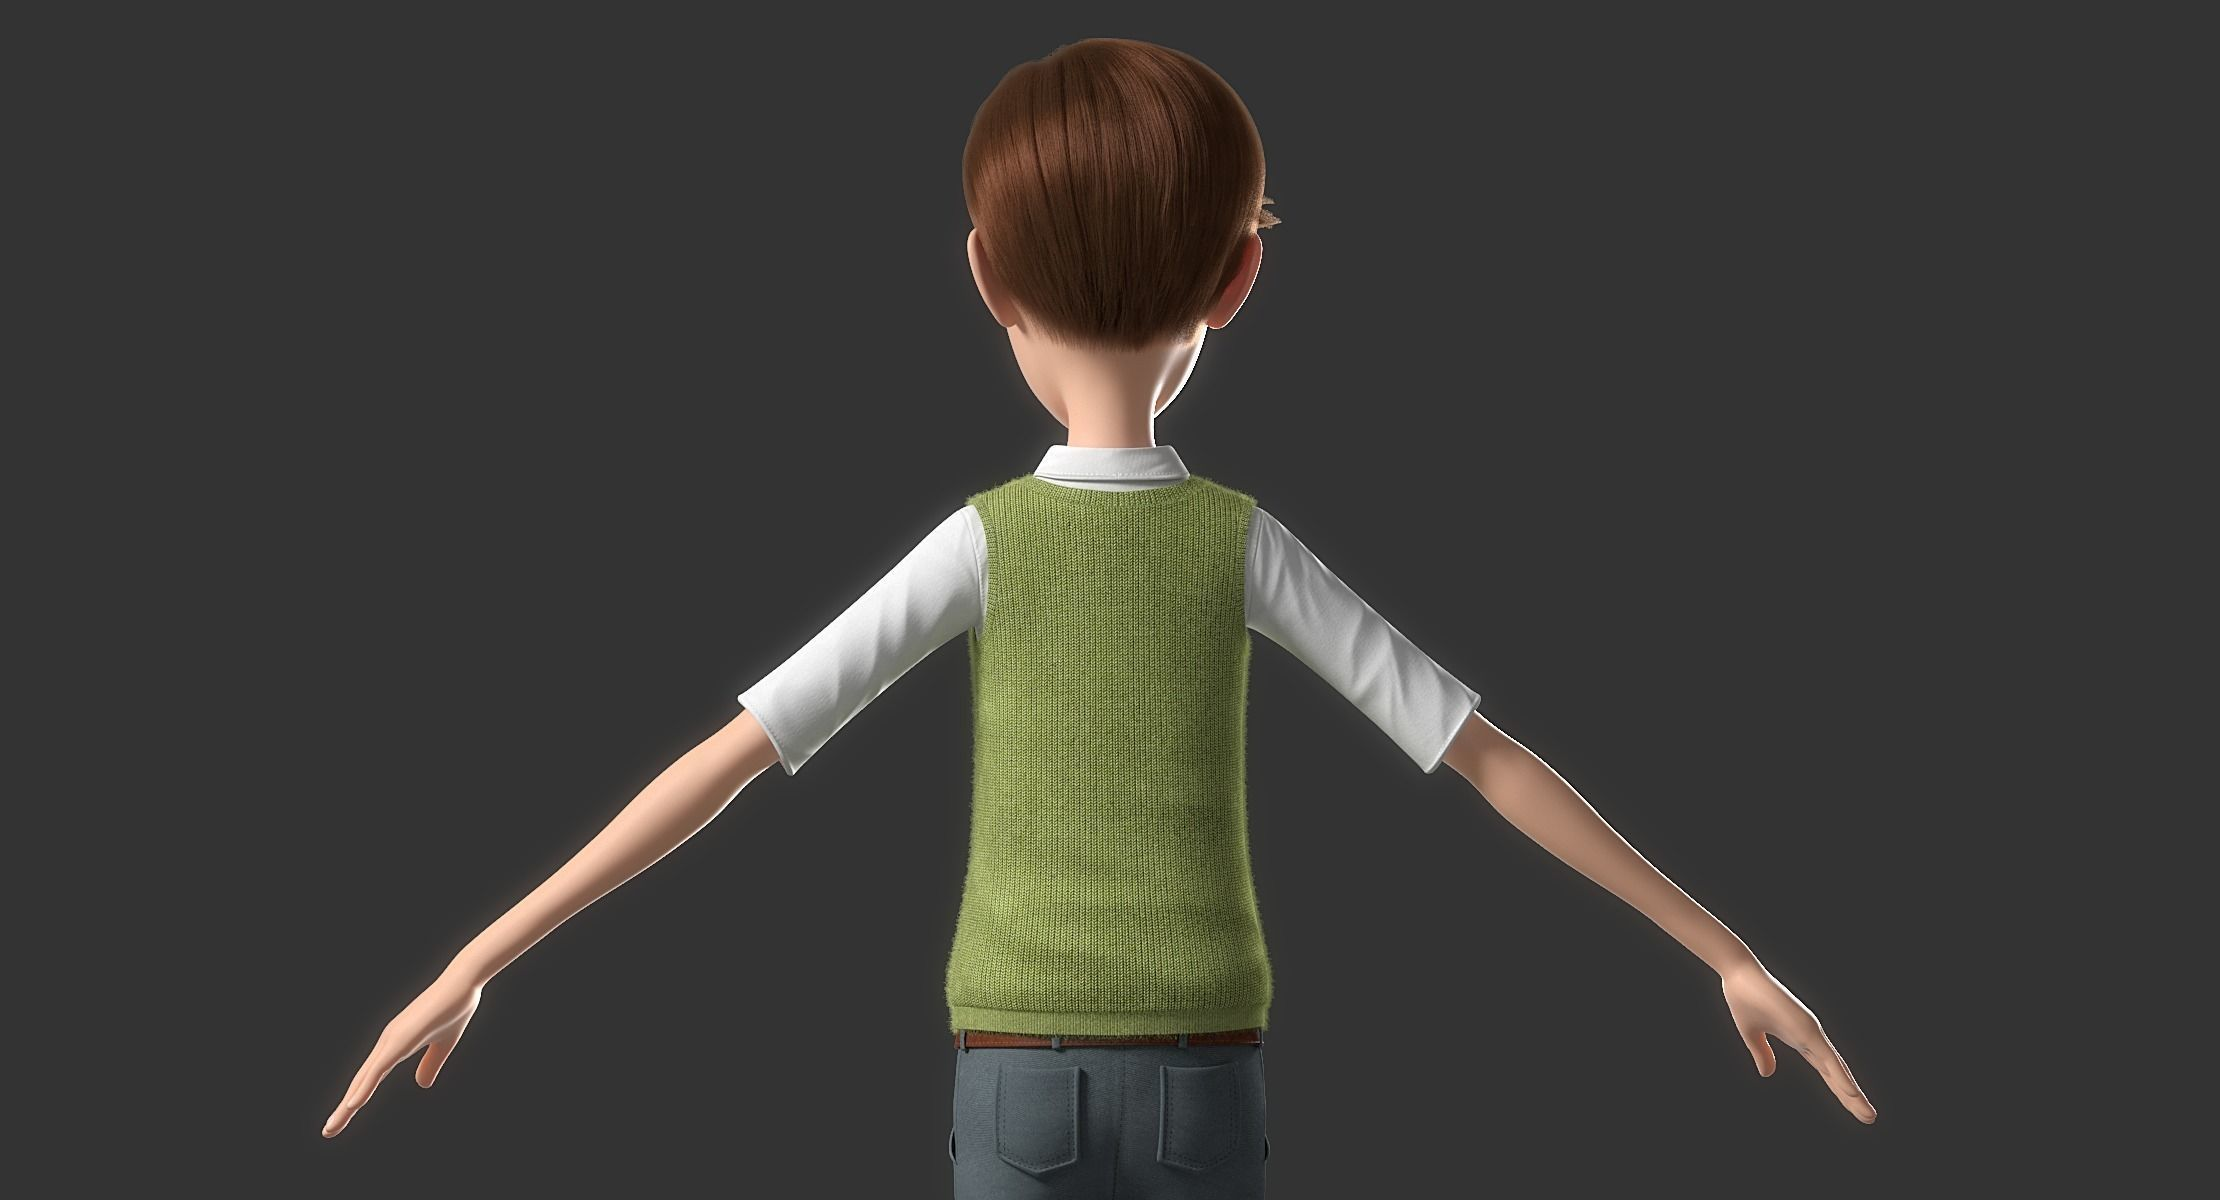 cartoon man norig 3d model obj fbx ma mb mtl 12